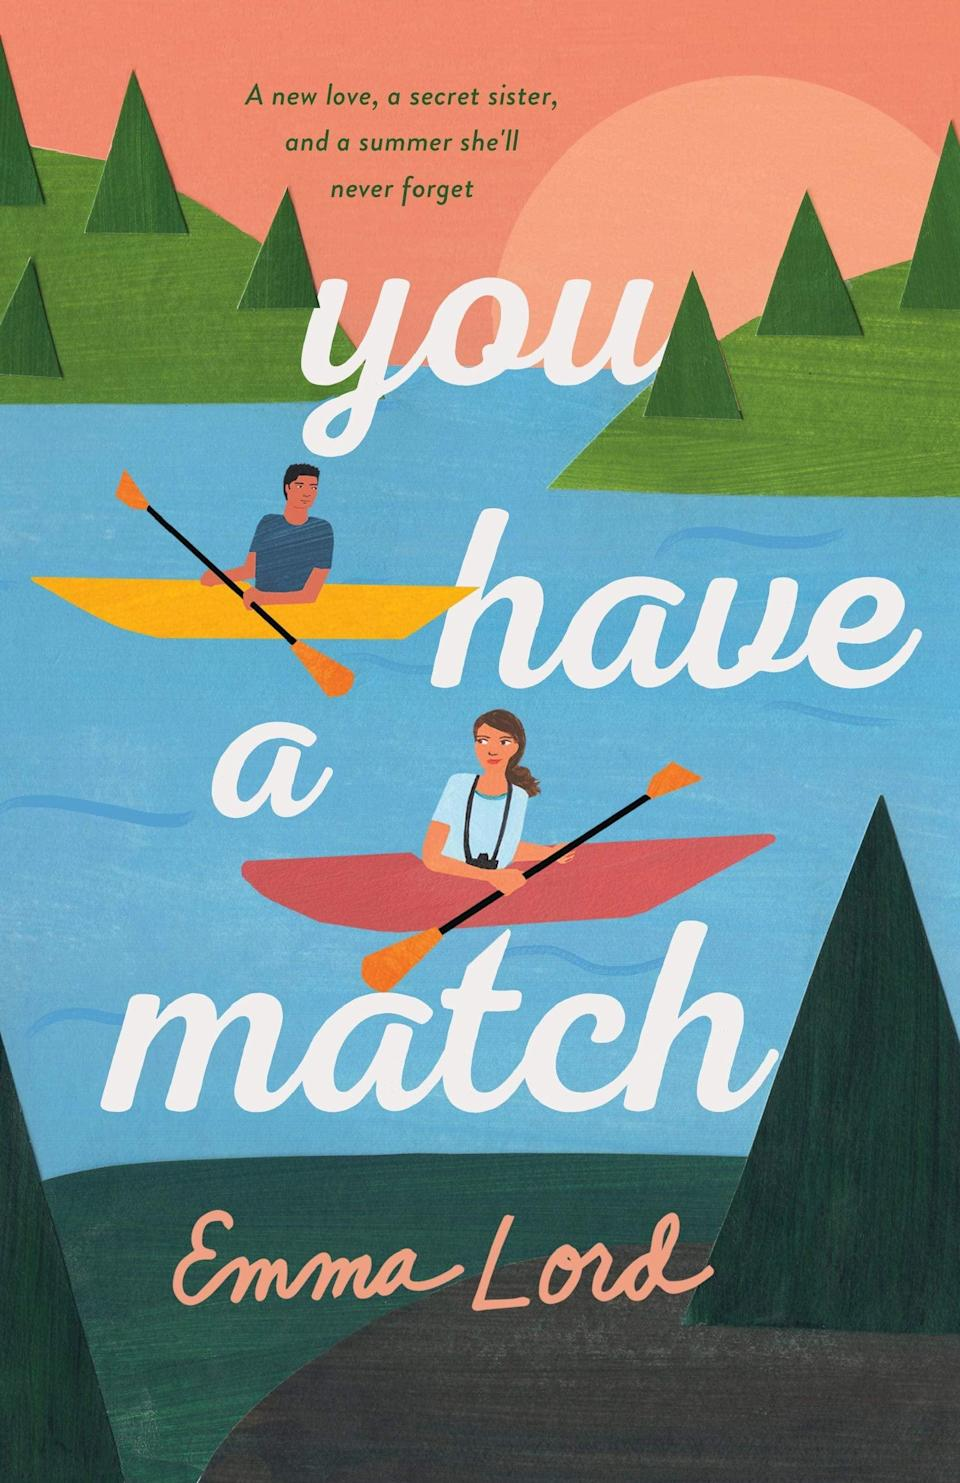 <p>Emma Lord's debut novel, <strong>Tweet Cute</strong>, was the charming YA rom-com readers needed in 2020, and her second book, <span><strong>You Have a Match</strong></span>, is set to be every bit as much fun as her first. When Abby signs up for a DNA service, her goal is simply to catch the attention of her crush and best friend Leo, but things get complicated when she discovers she has an older sister she didn't know existed. </p> <p><em>Out Jan. 5</em></p>